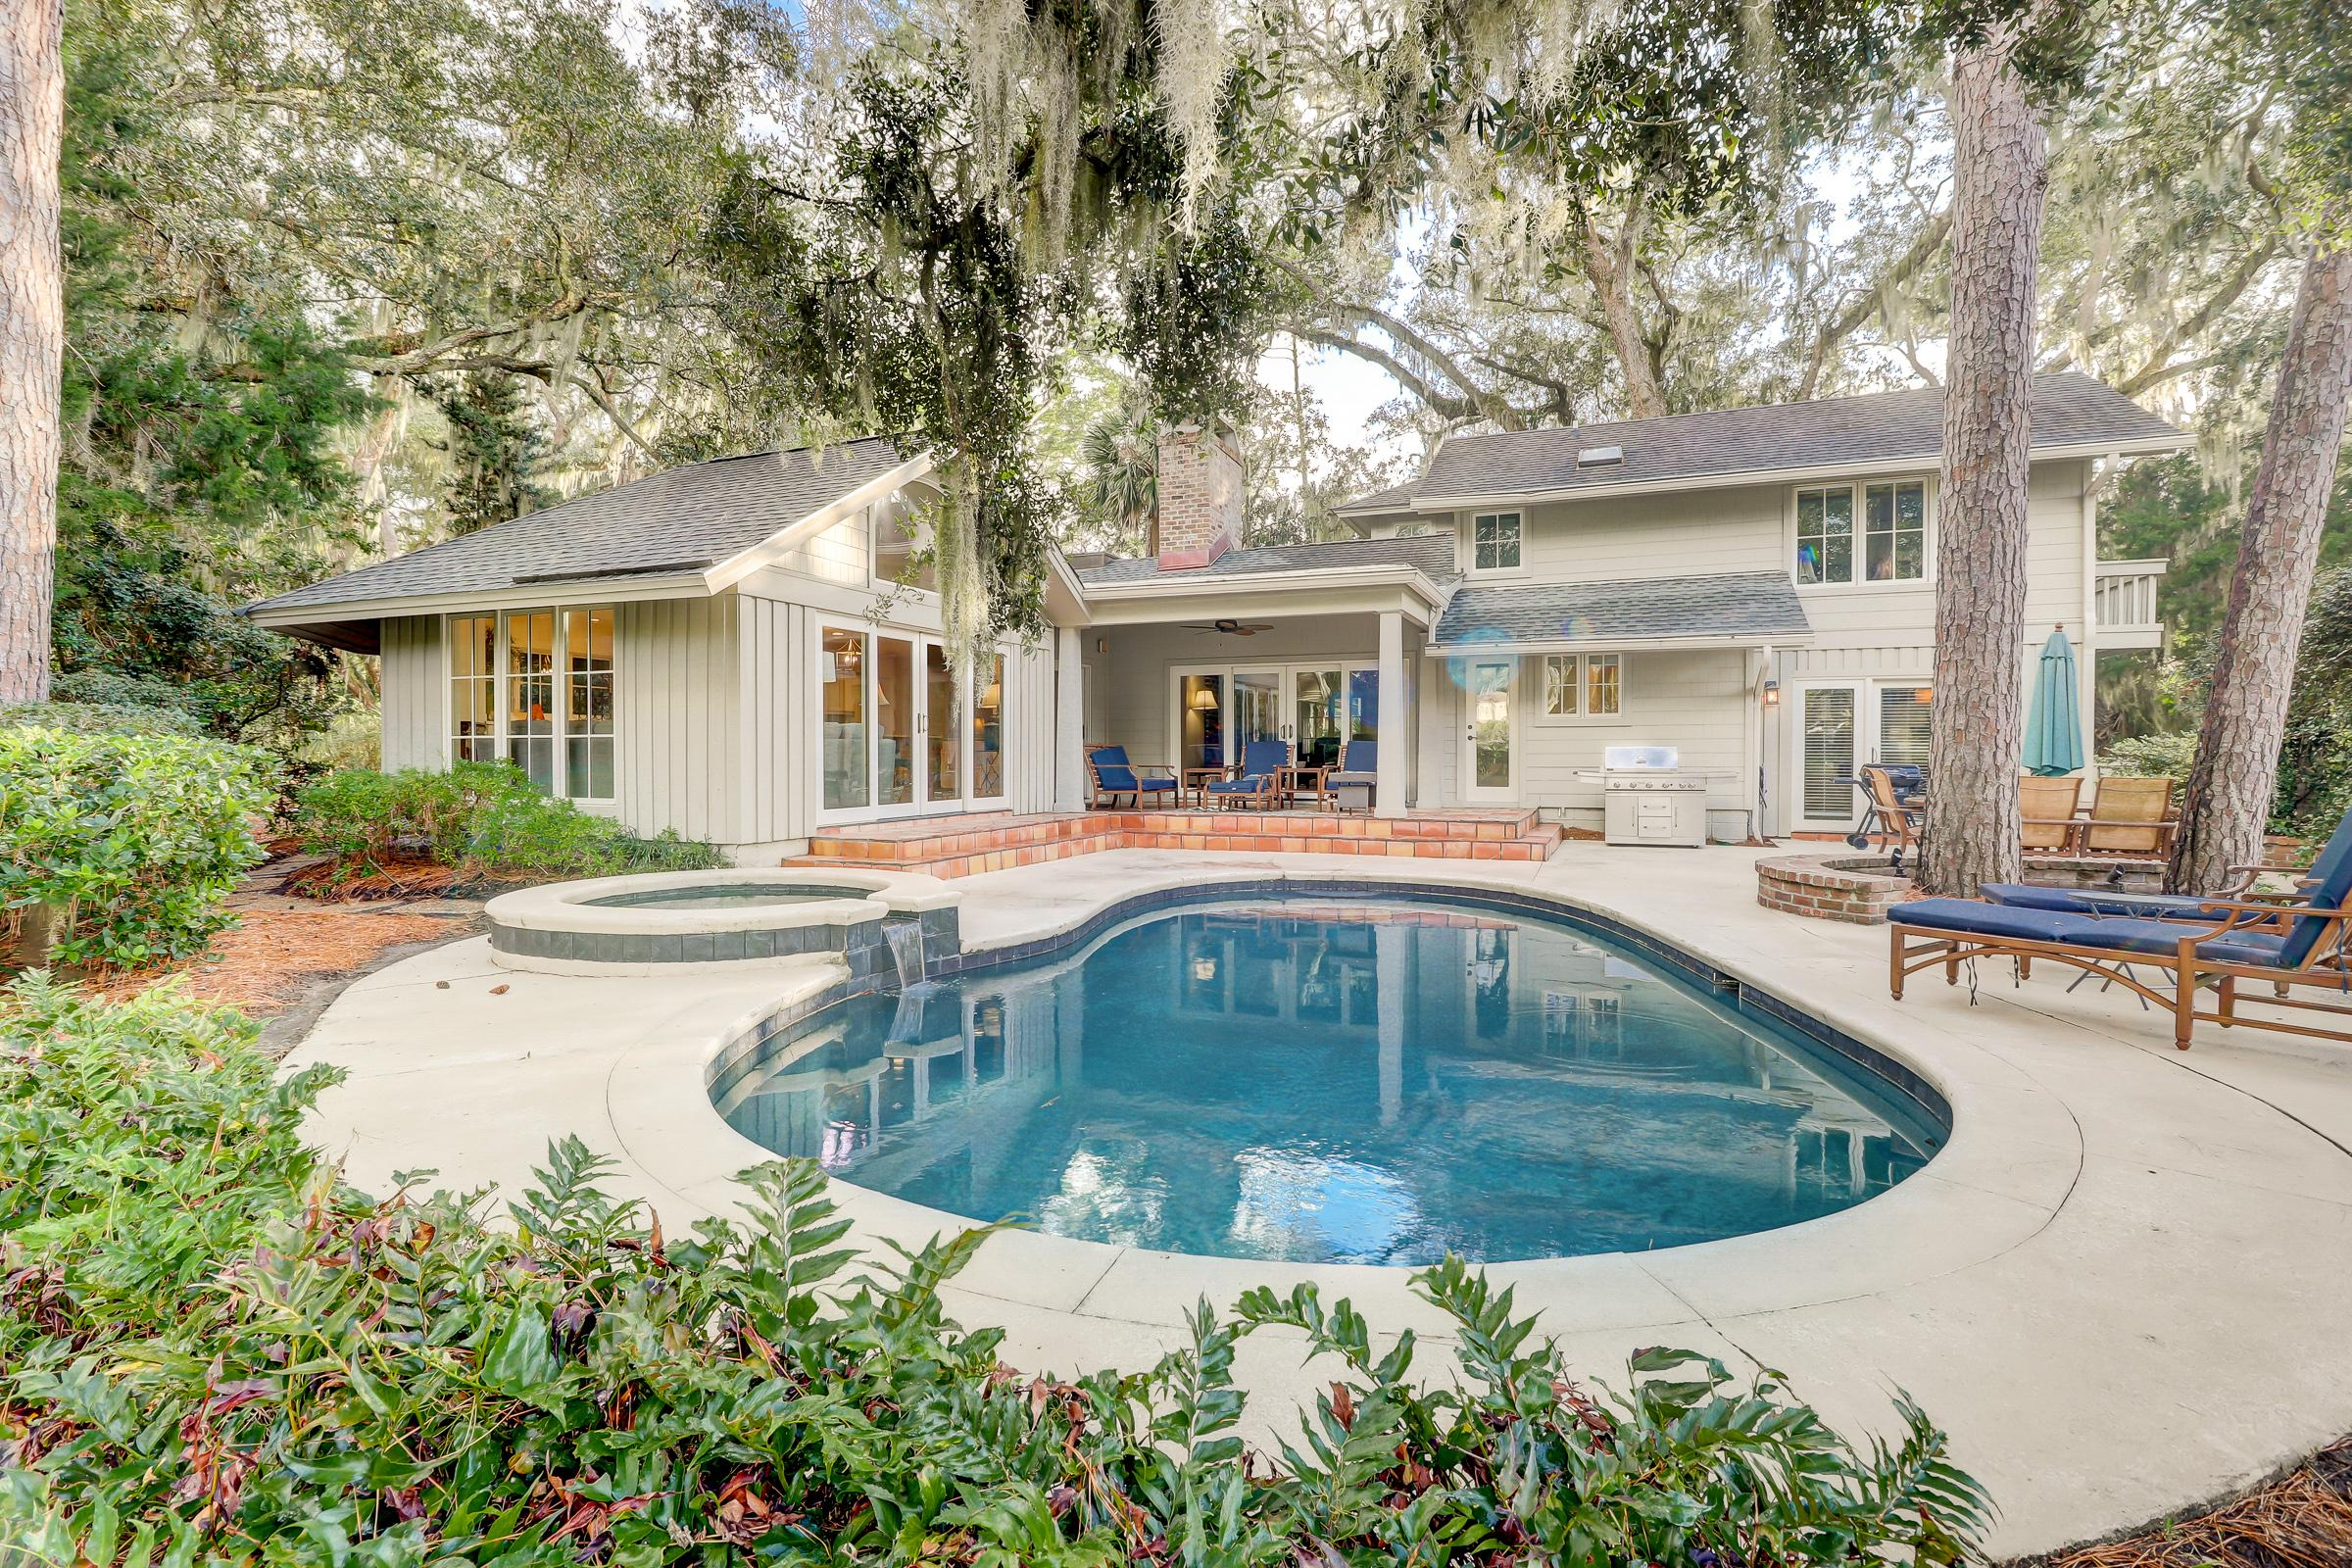 Welcome to Hilton Head Island! This incredible home is professionally managed by TurnKey Vacation Rentals.